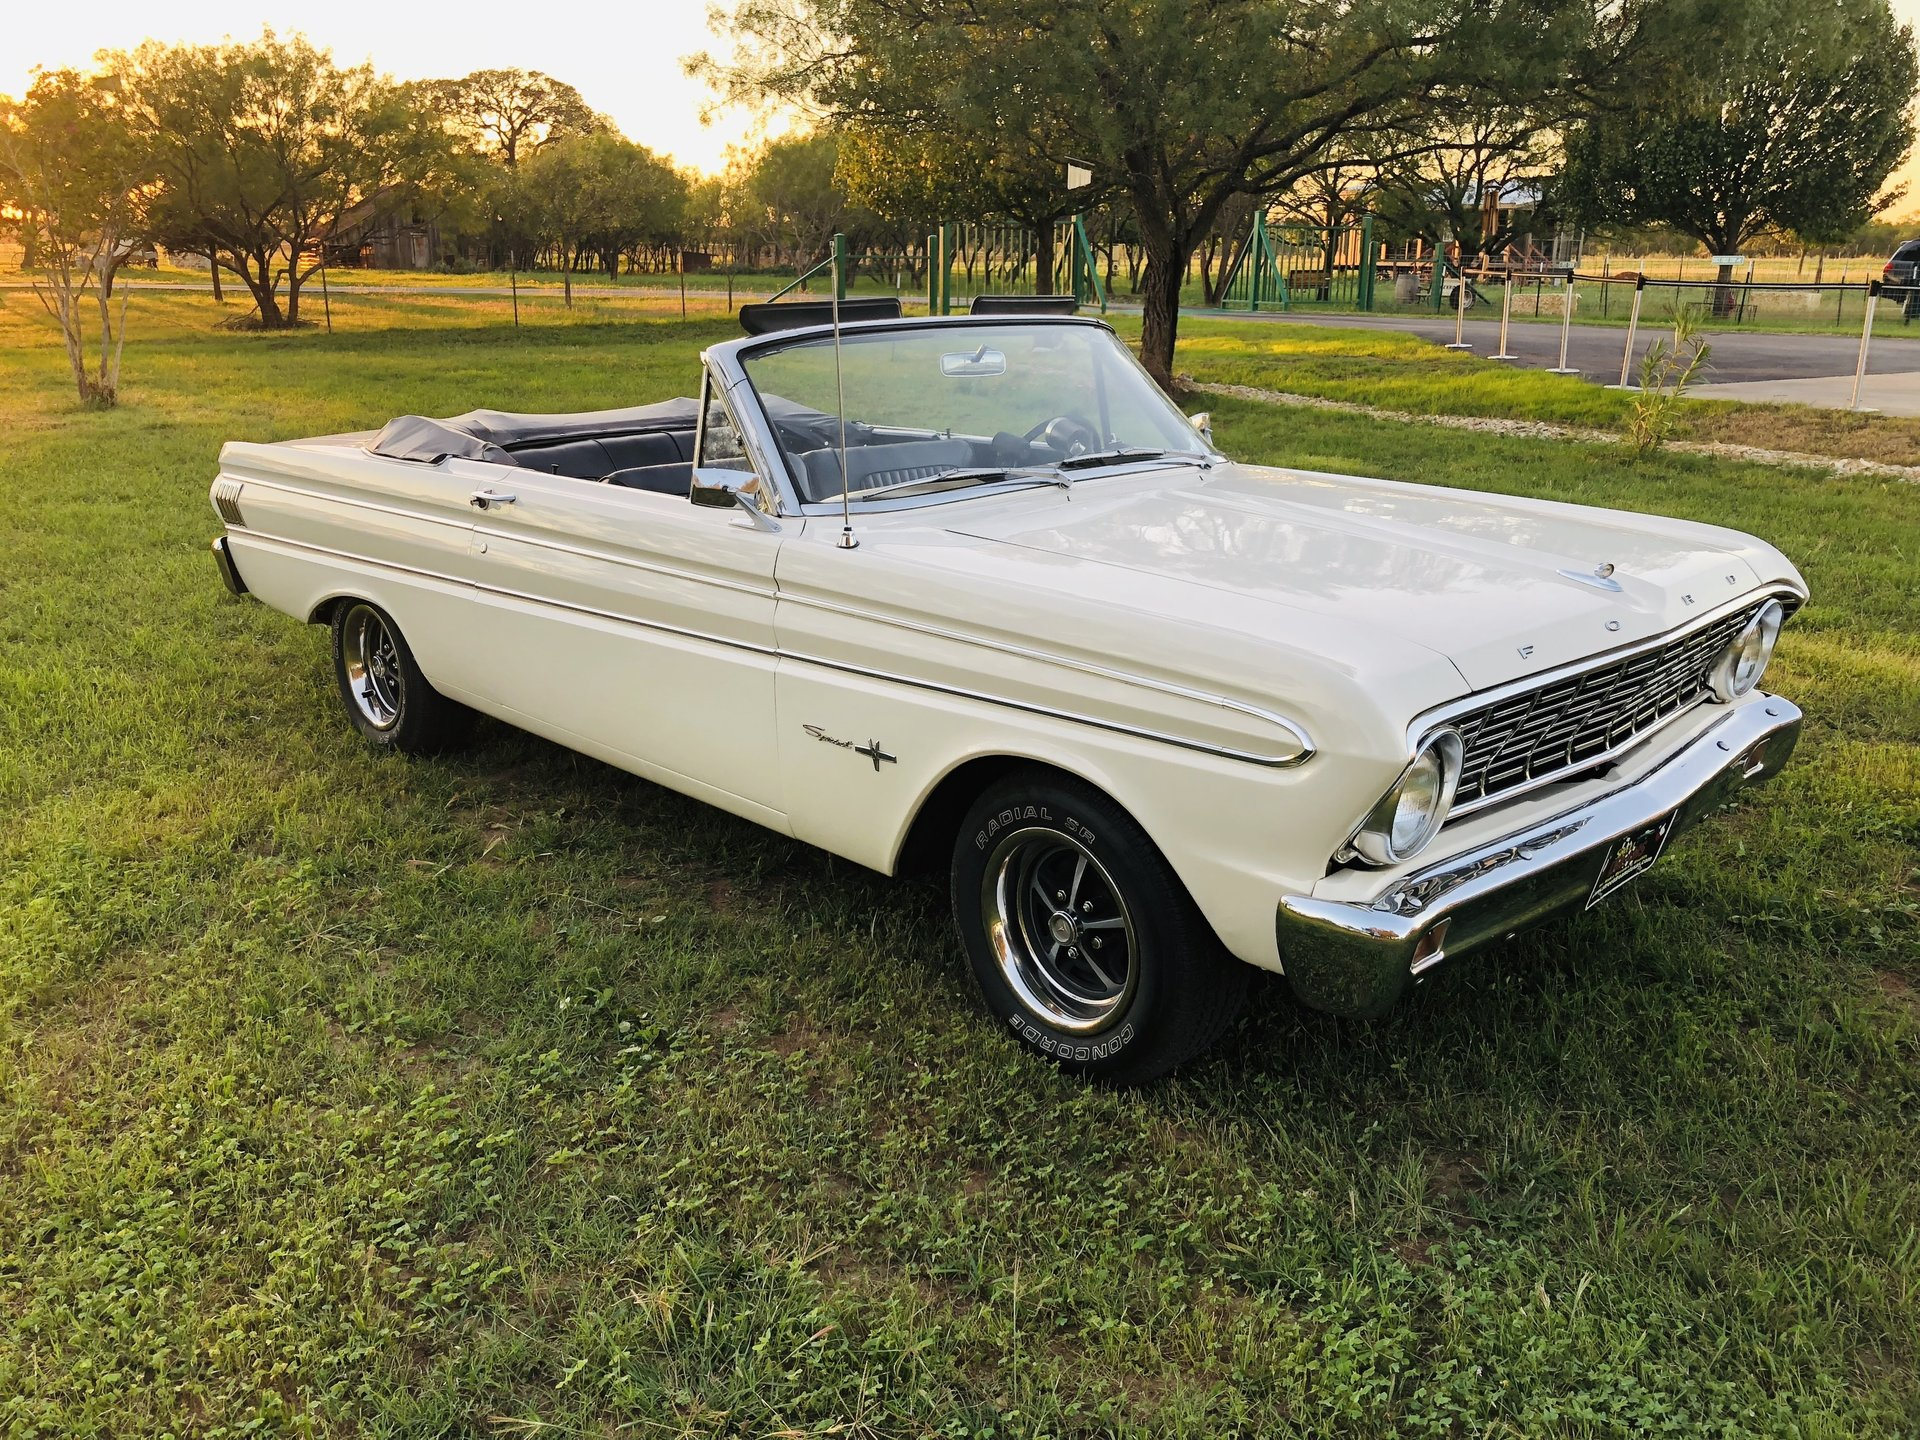 1964 Ford Falcon Sprint 260 V8 4 Speed Convertible Nice Clean For Sale